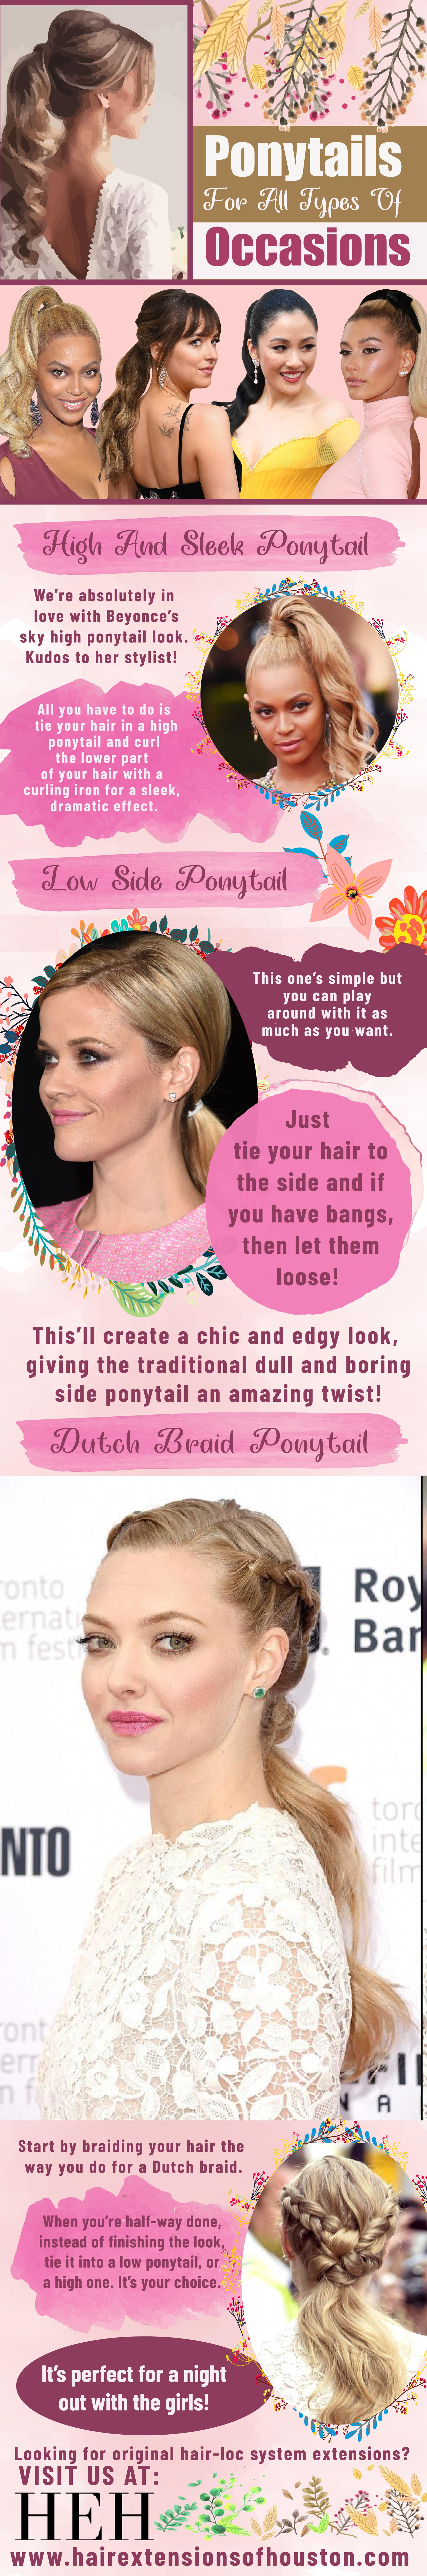 Ponytails For All Types Of Occasions